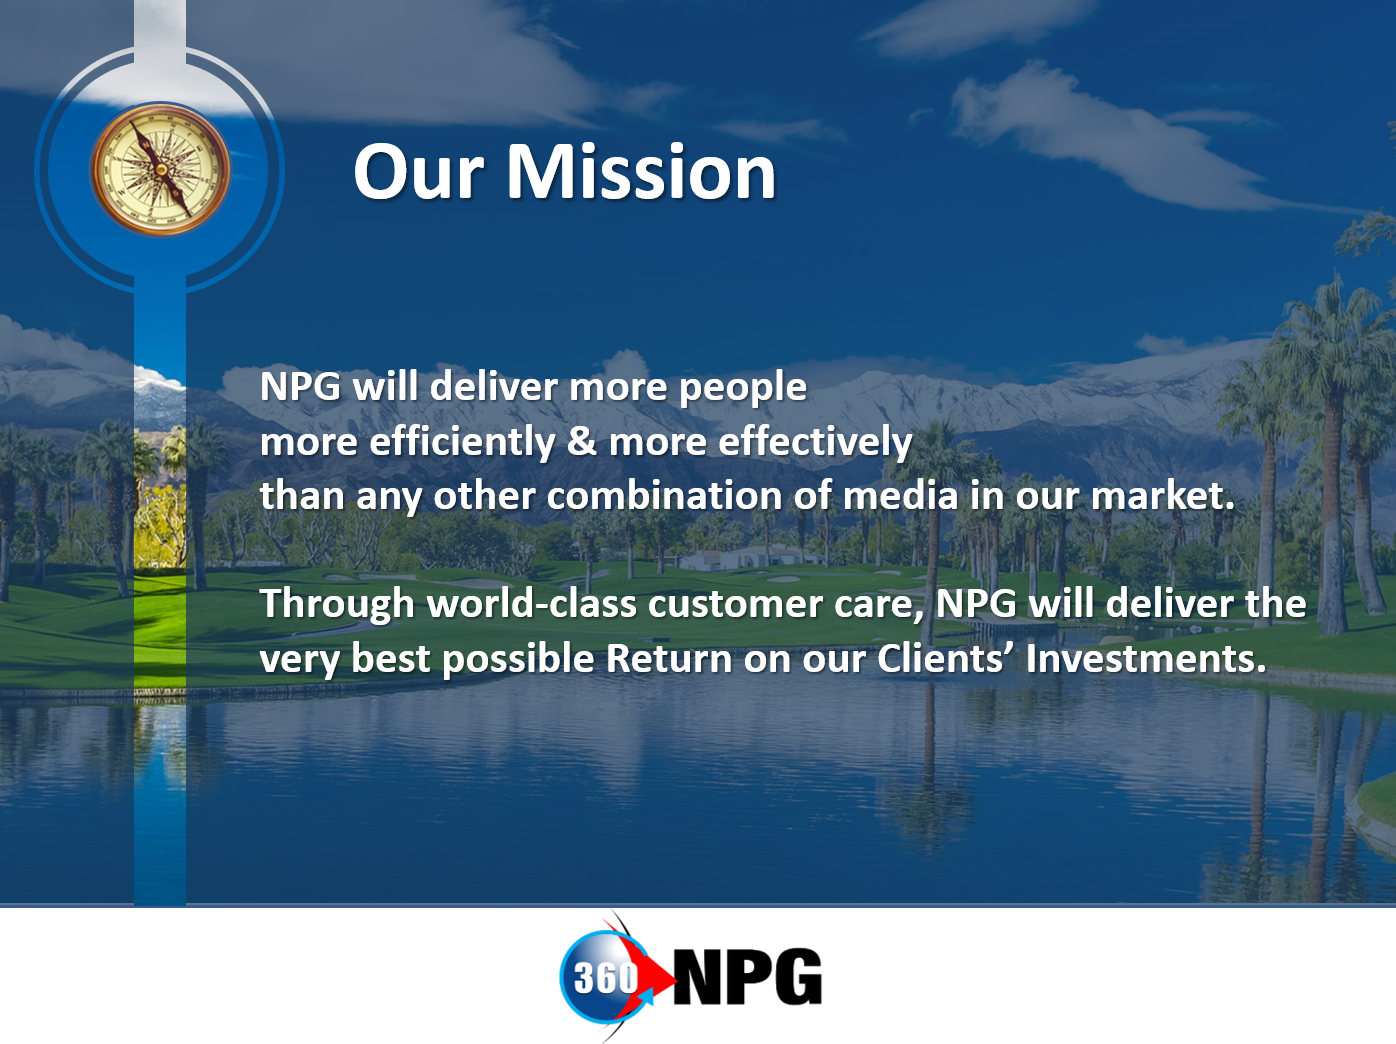 NPG will deliver more people more efficiently & more effectively than any other combination of media in our market. Through world-class customer care, NPG will deliver the very best possible Return on our Clients' Investments.